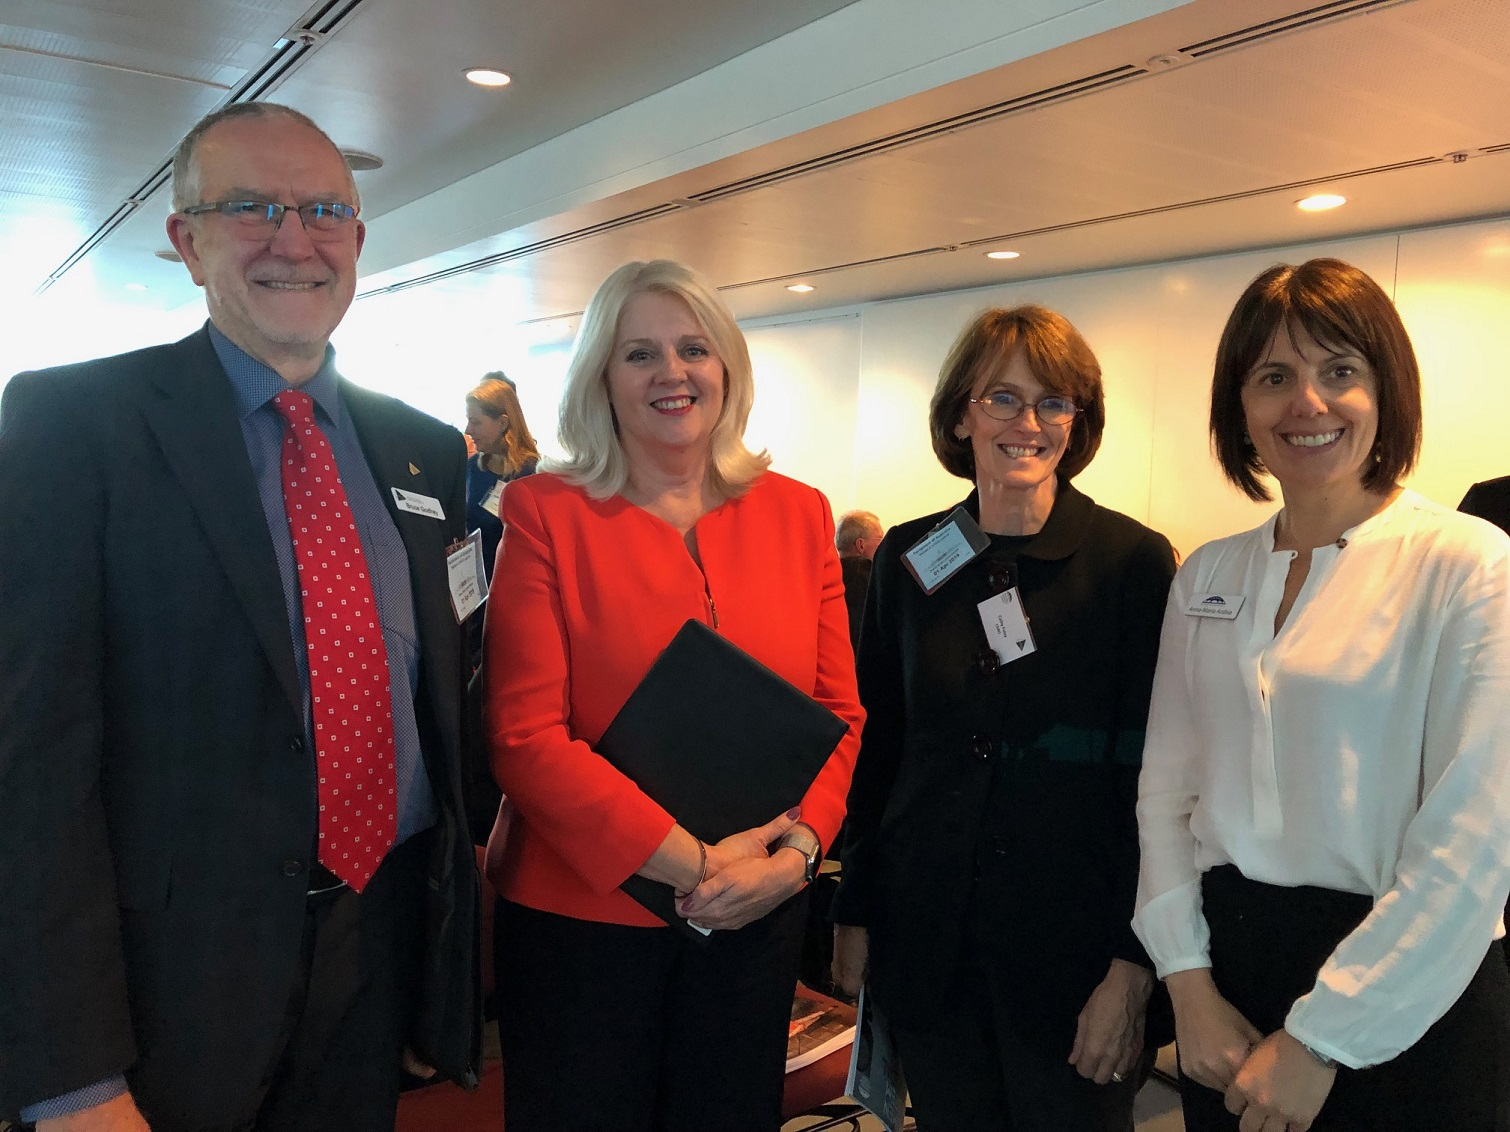 Bruce Godfrey, Karen Andrews, Catherine Foley, Anna-Maria Arabia at the launch of the Women in STEM Decadal Plan